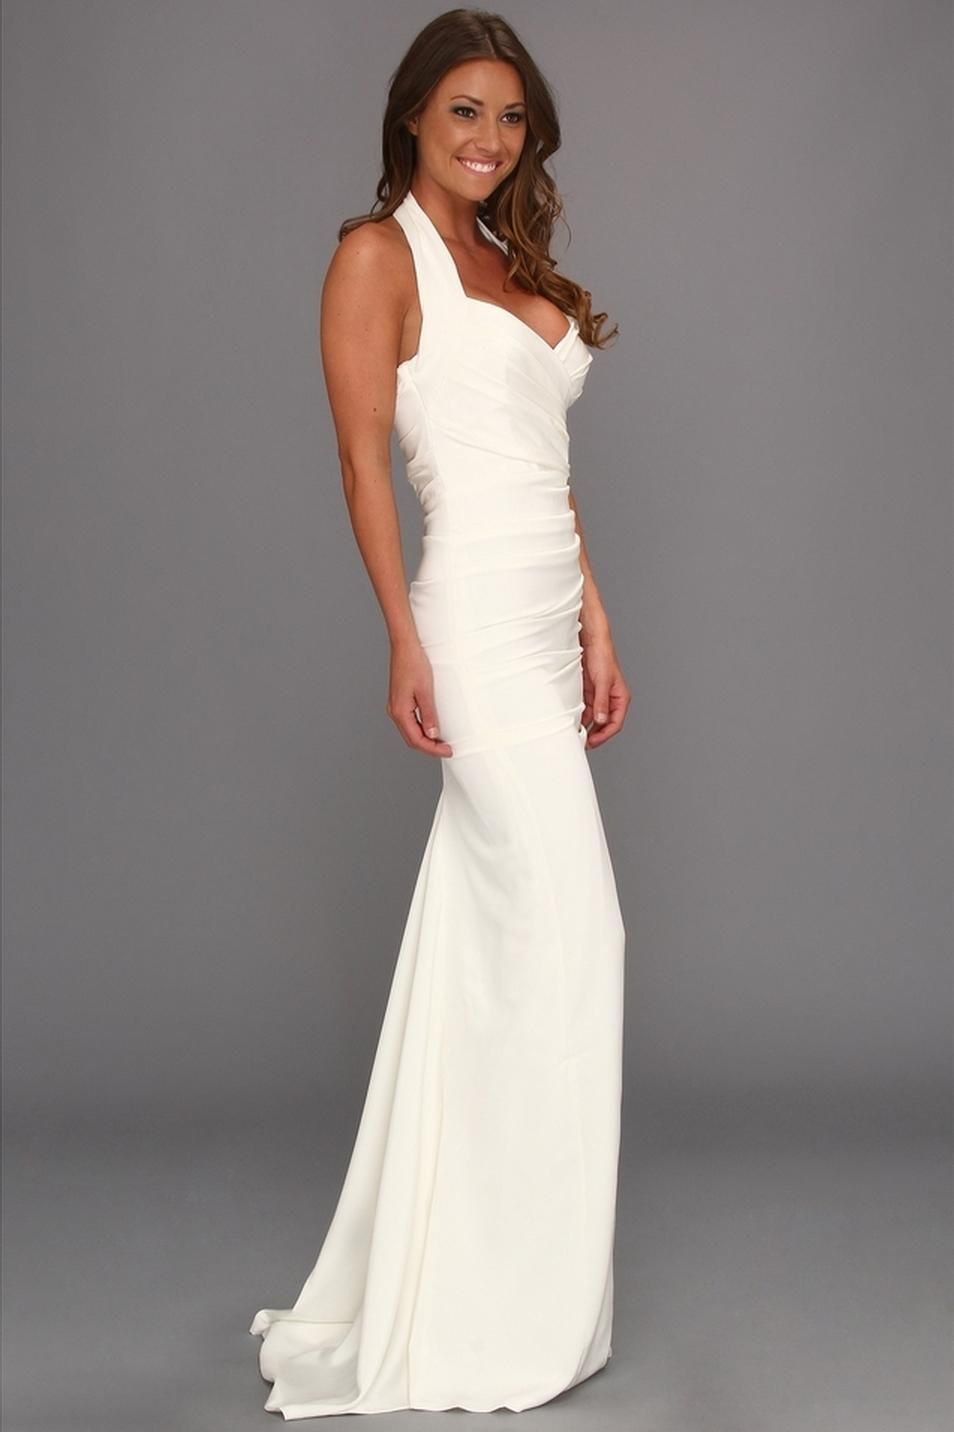 Nicole Miller Marilyn Wedding Dress. Nicole Miller Marilyn Wedding Dress on Tradesy Weddings (formerly Recycled Bride), the world's largest wedding marketplace. Price $550.00...Could You Get it For Less? Click Now to Find Out!